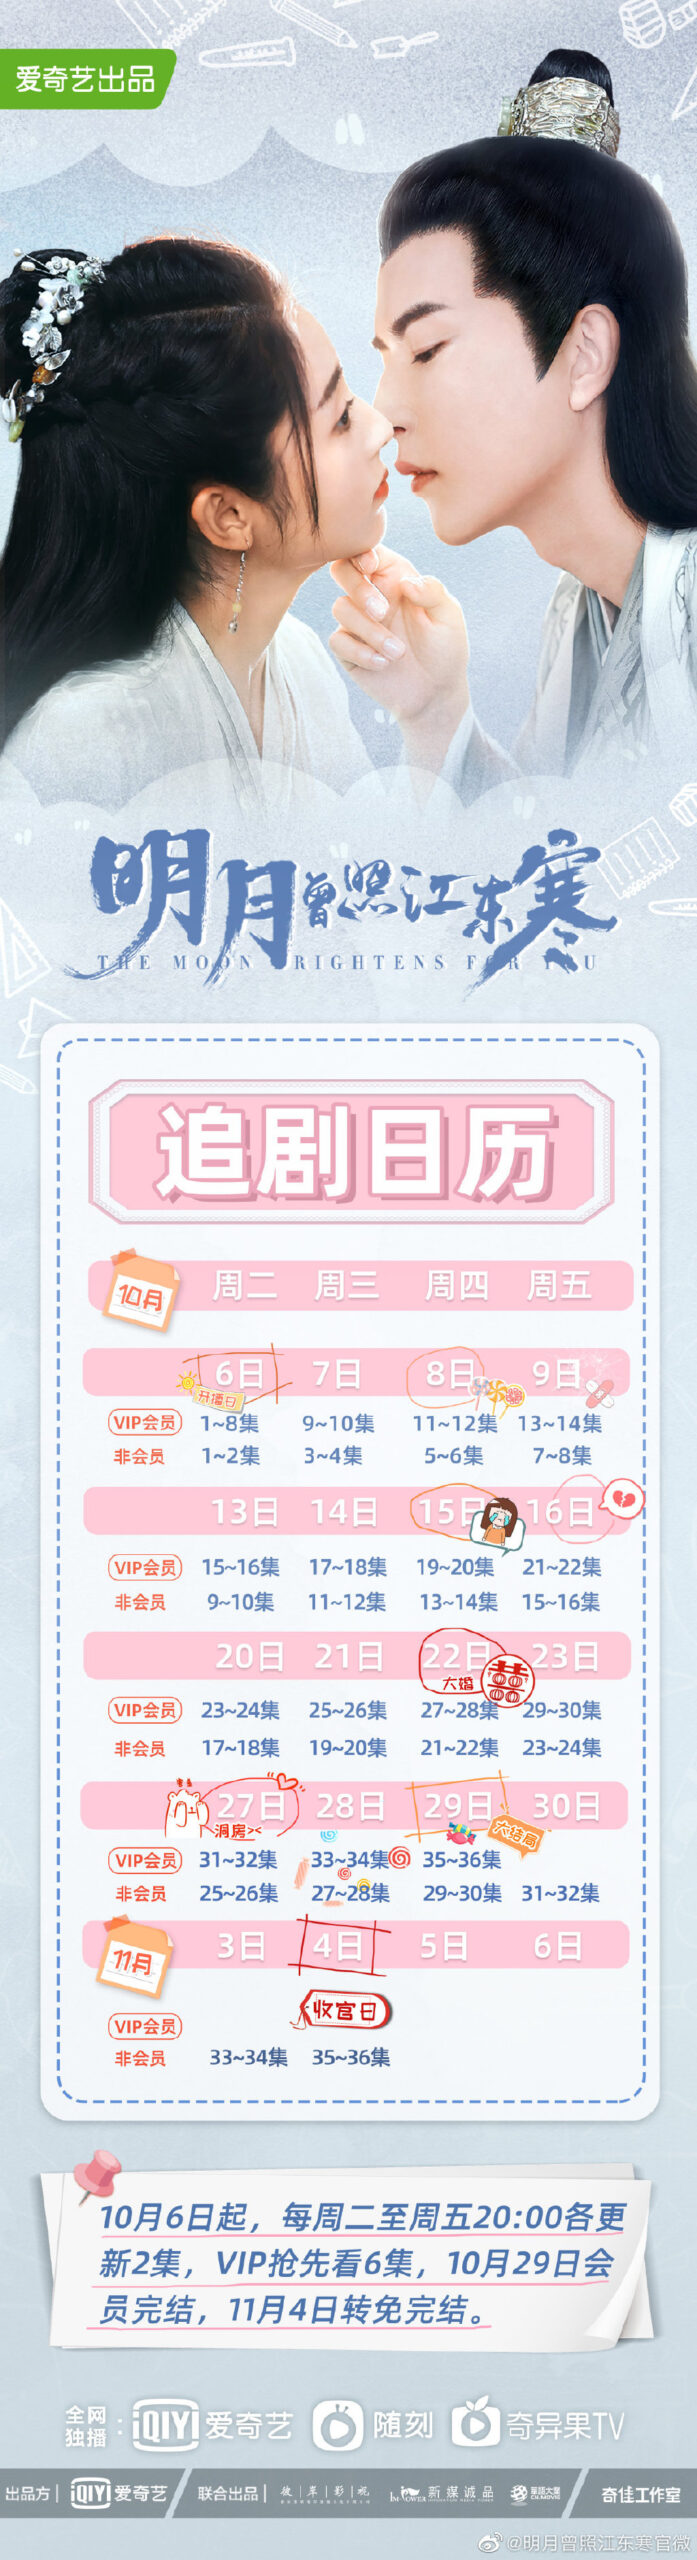 The Moon Brightens For You Chinese Drama Airing Calendar